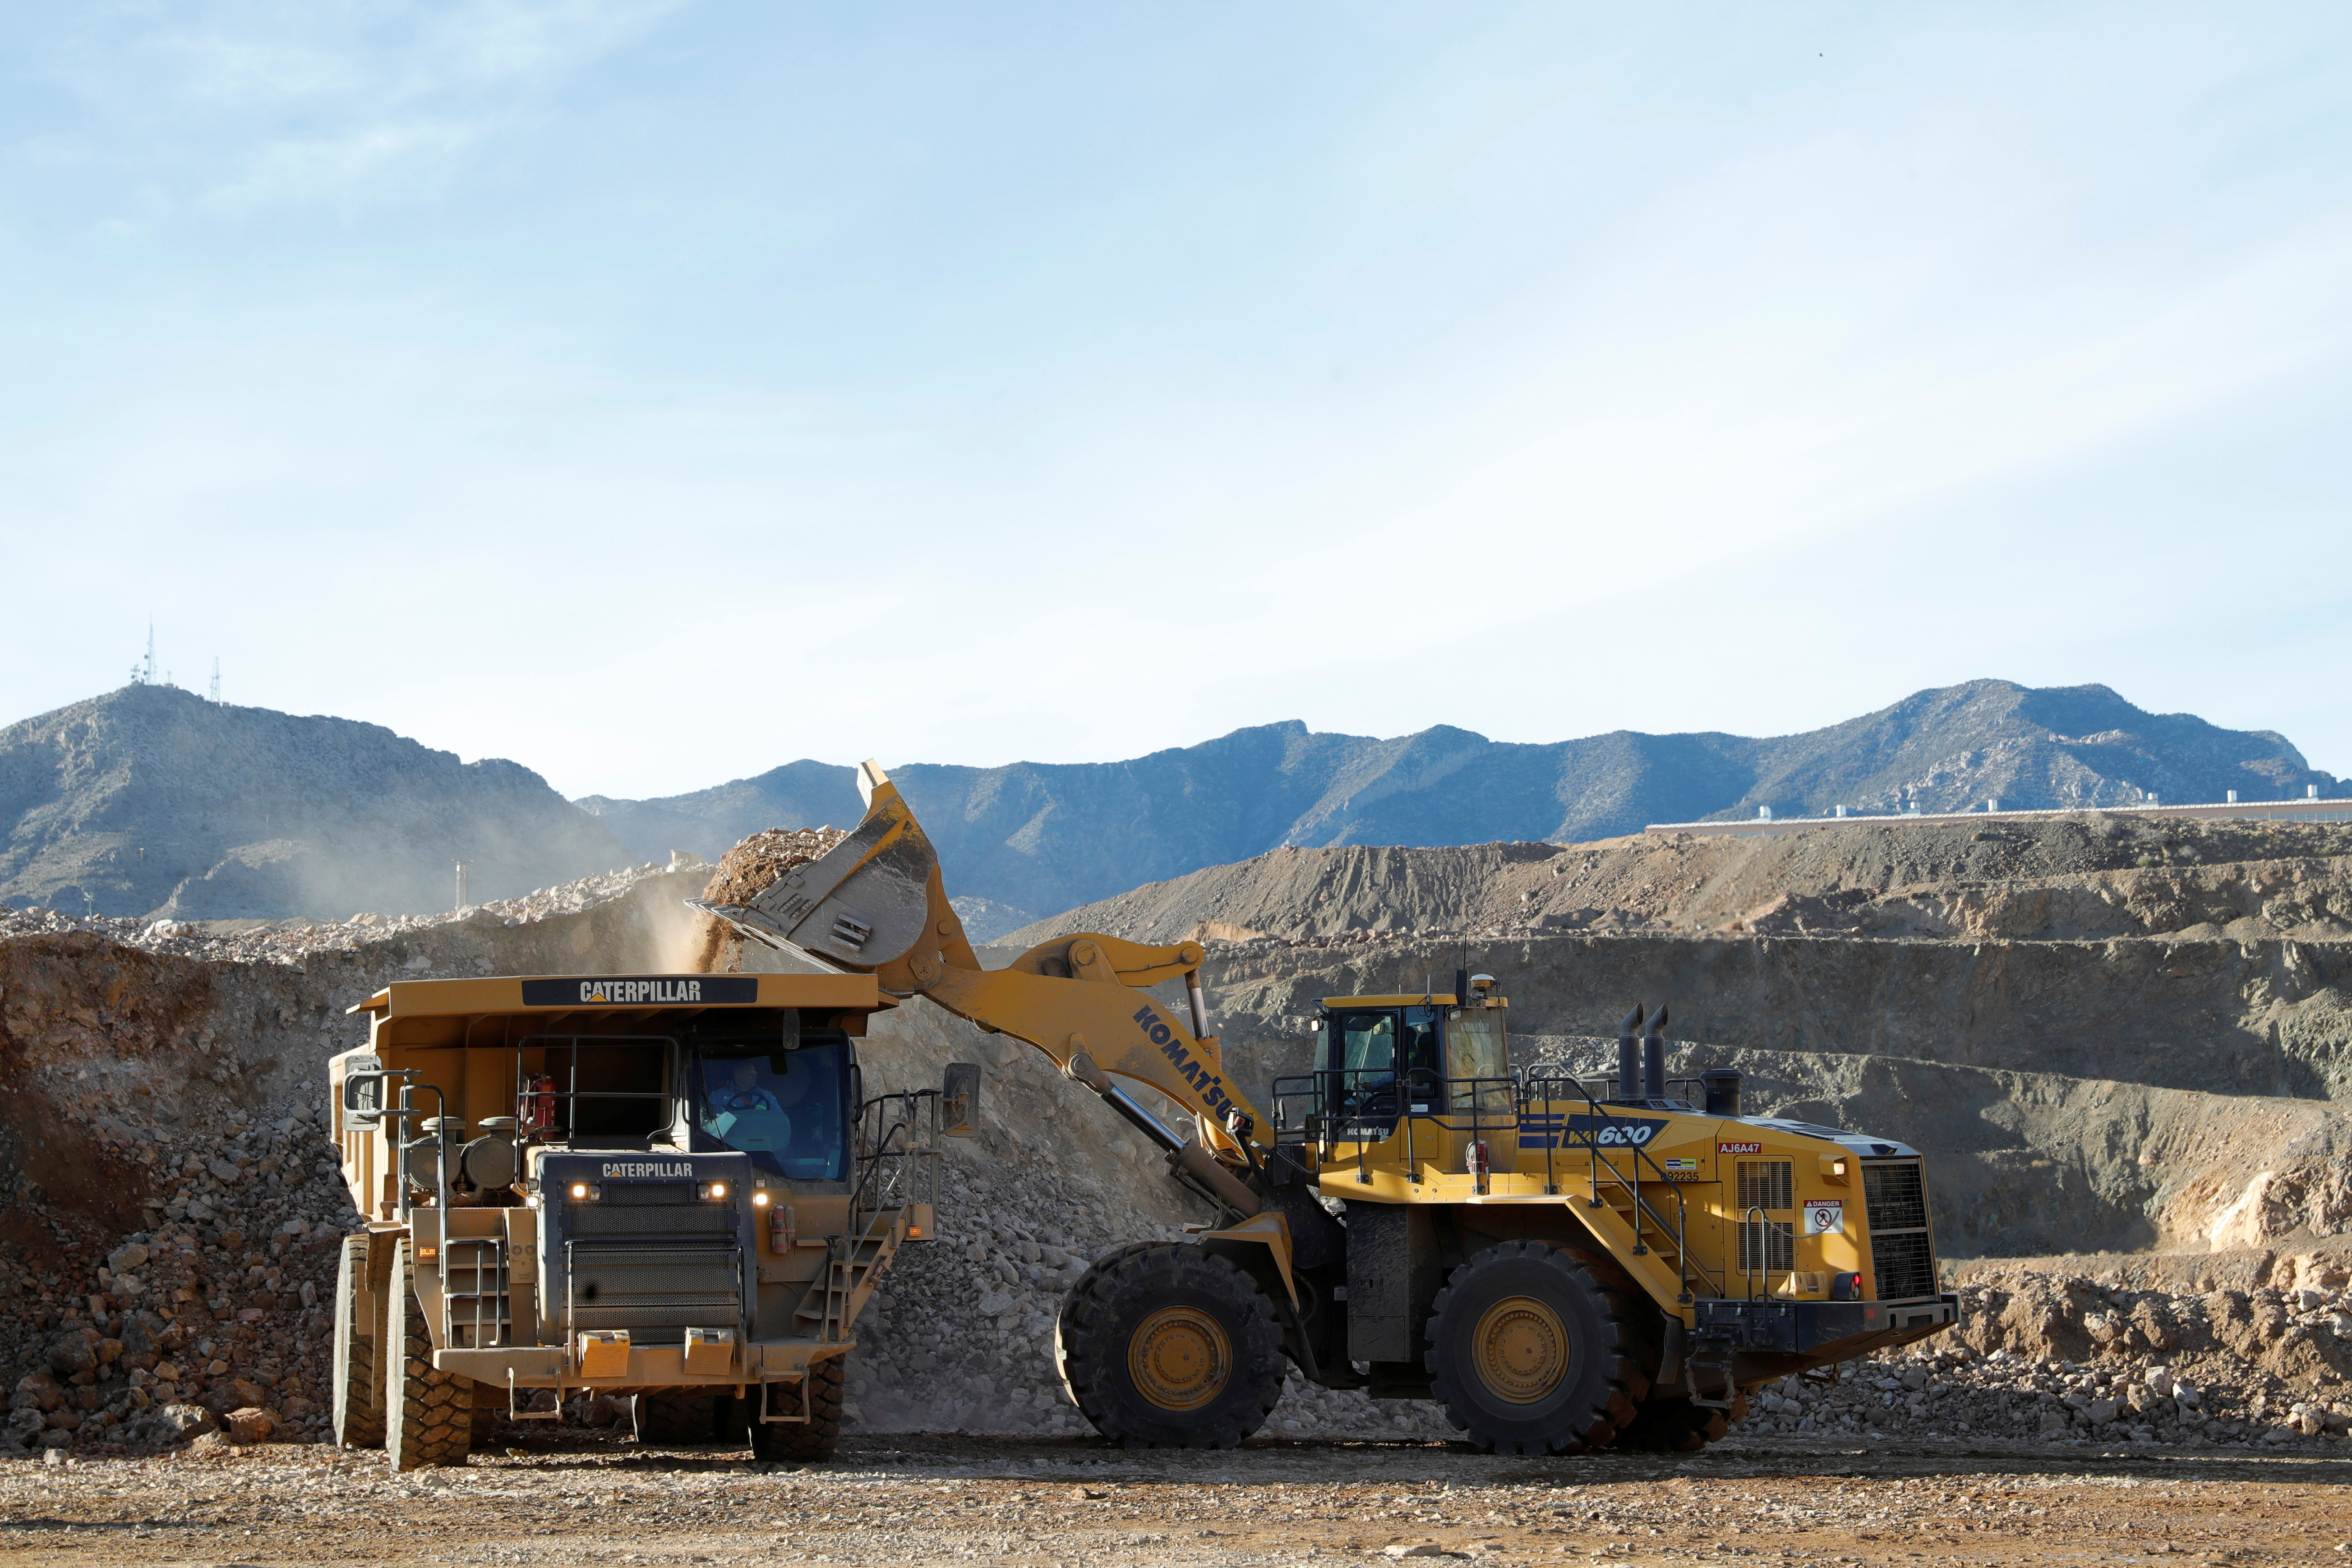 A wheel loader operator fills a truck with ore at the MP Materials rare earth mine in Mountain Pass, California, U.S. January 30, 2020